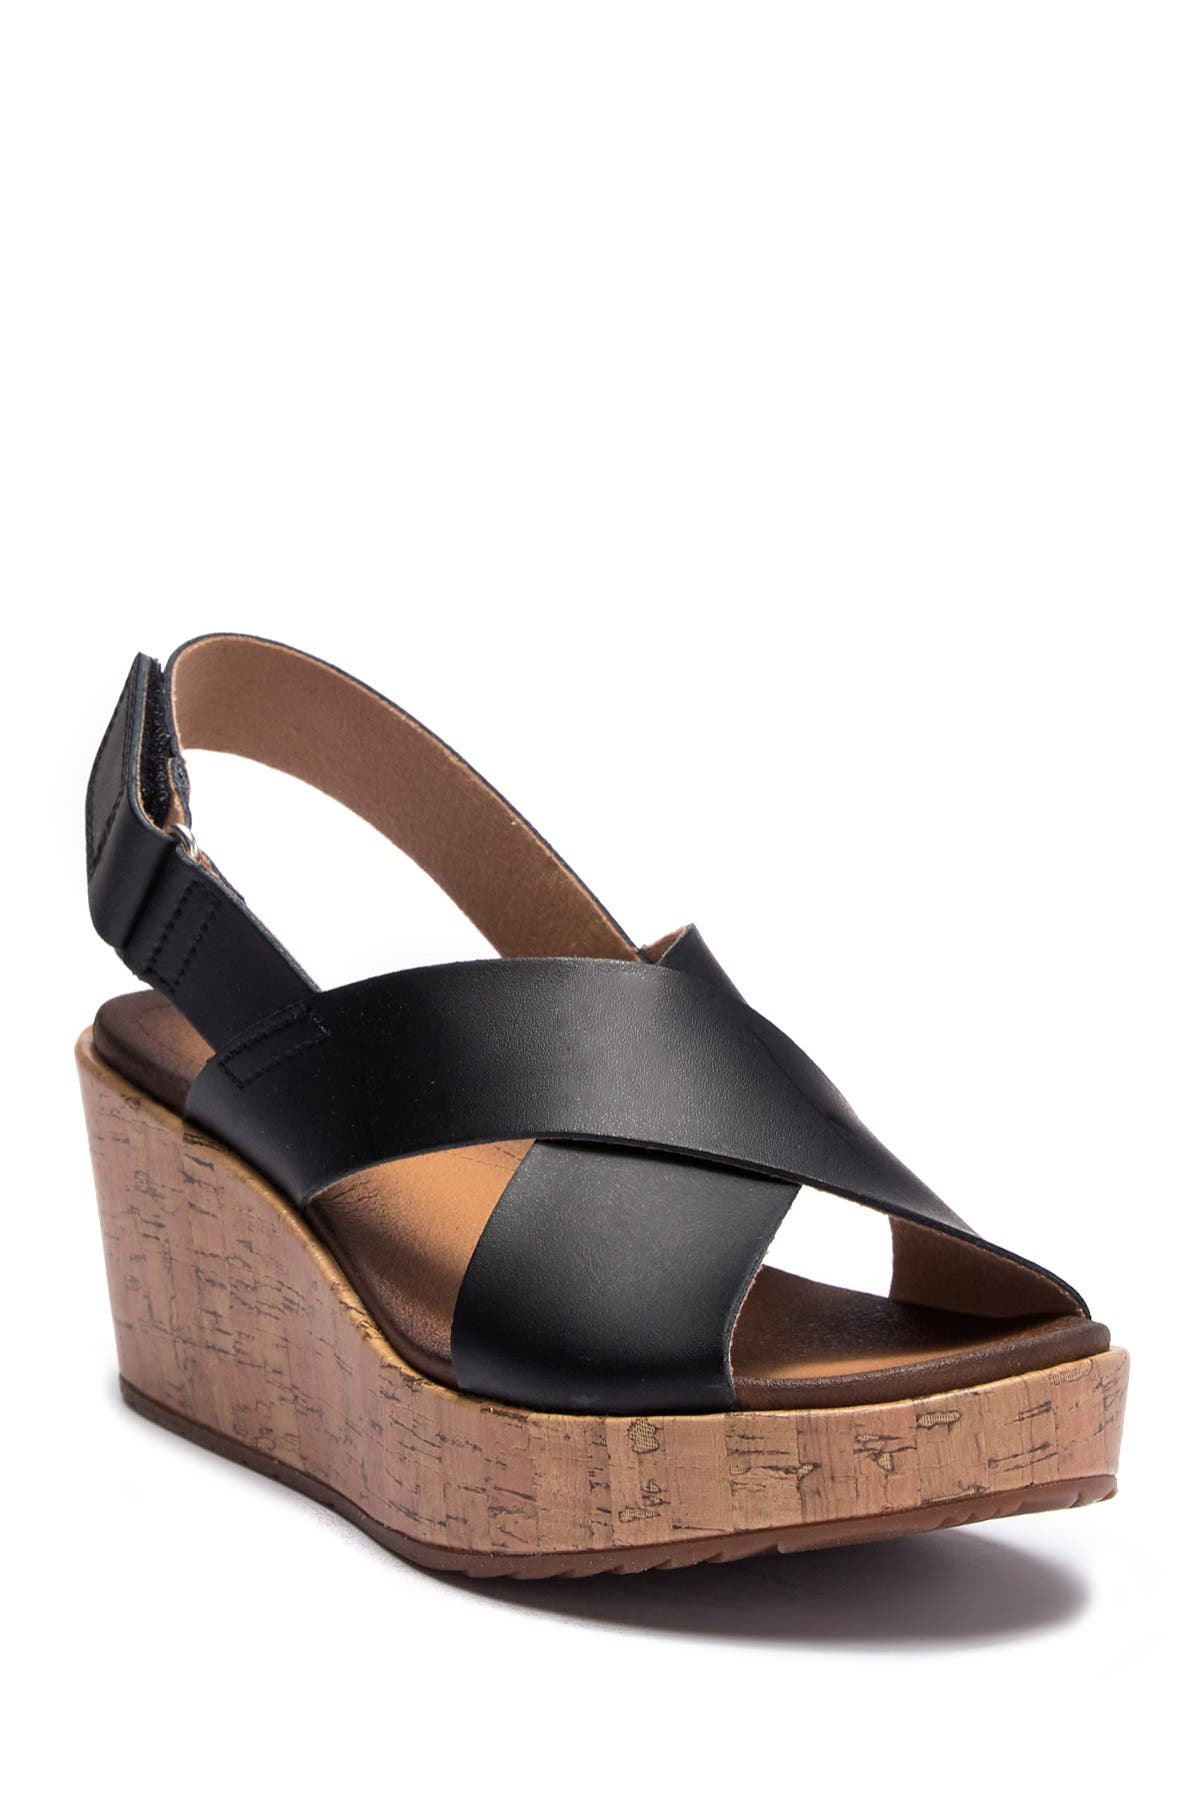 Image of Clarks Stasha Hale Leather Wedge Sandal - Wide Width Available